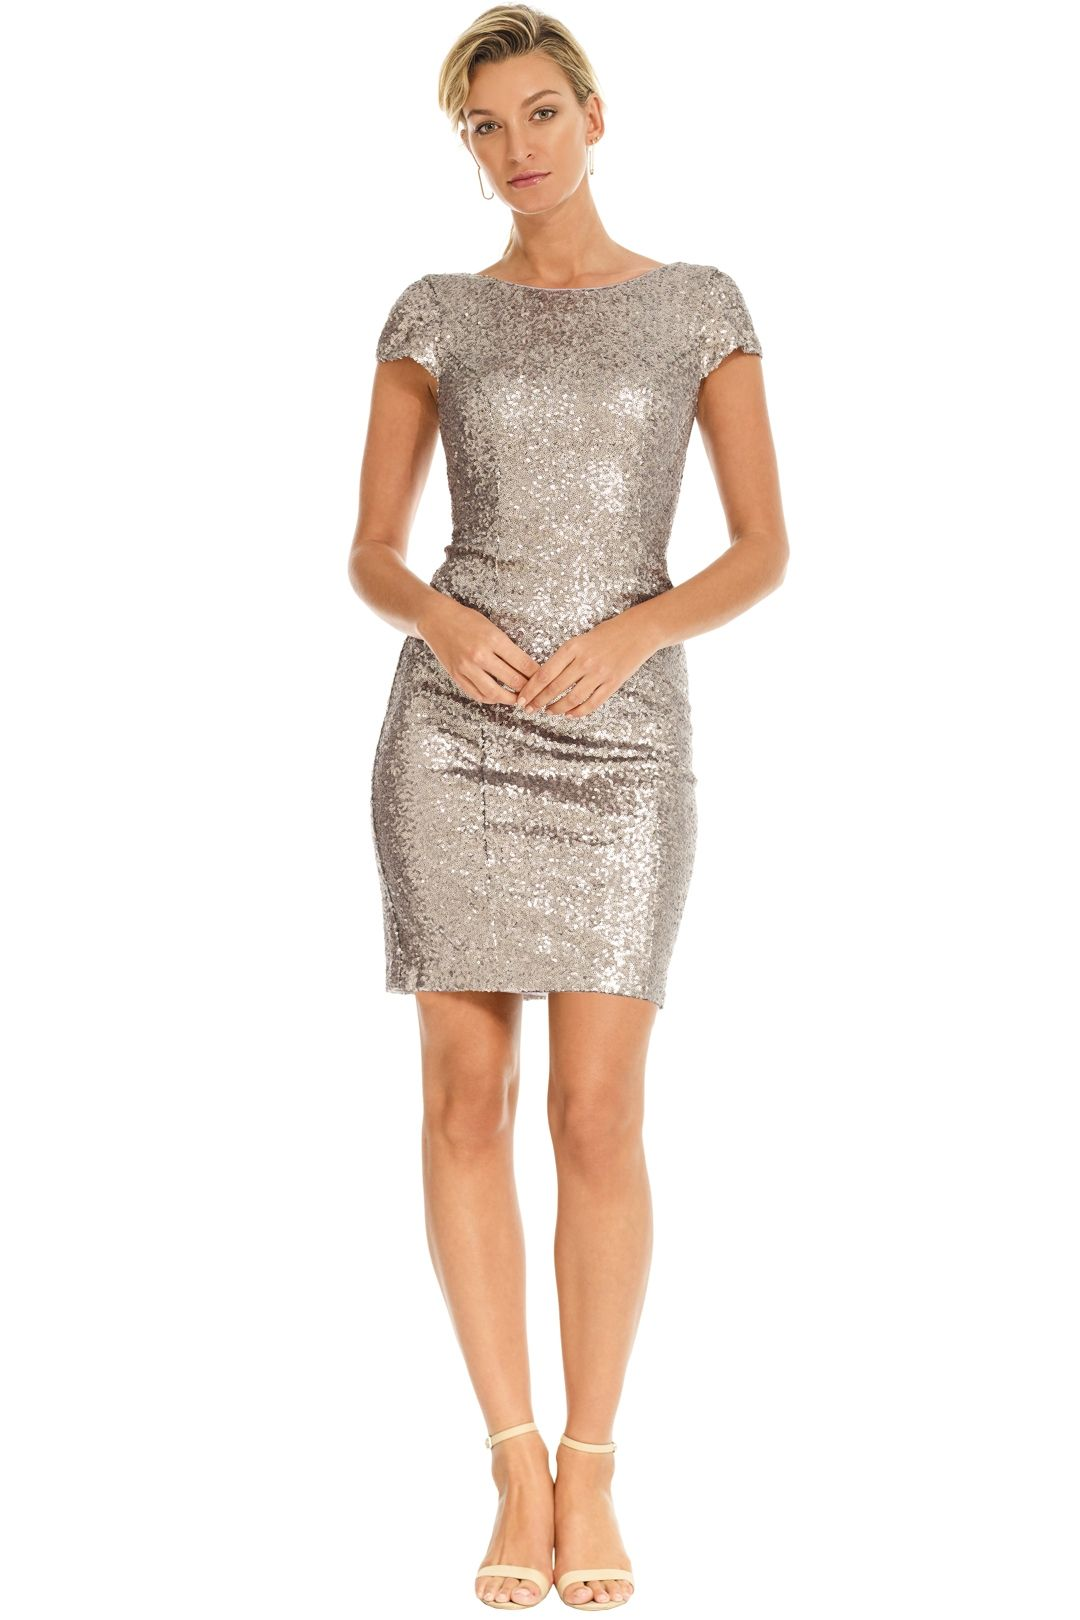 Les Demoiselle - Amara Sequin Dress - Silver - Front